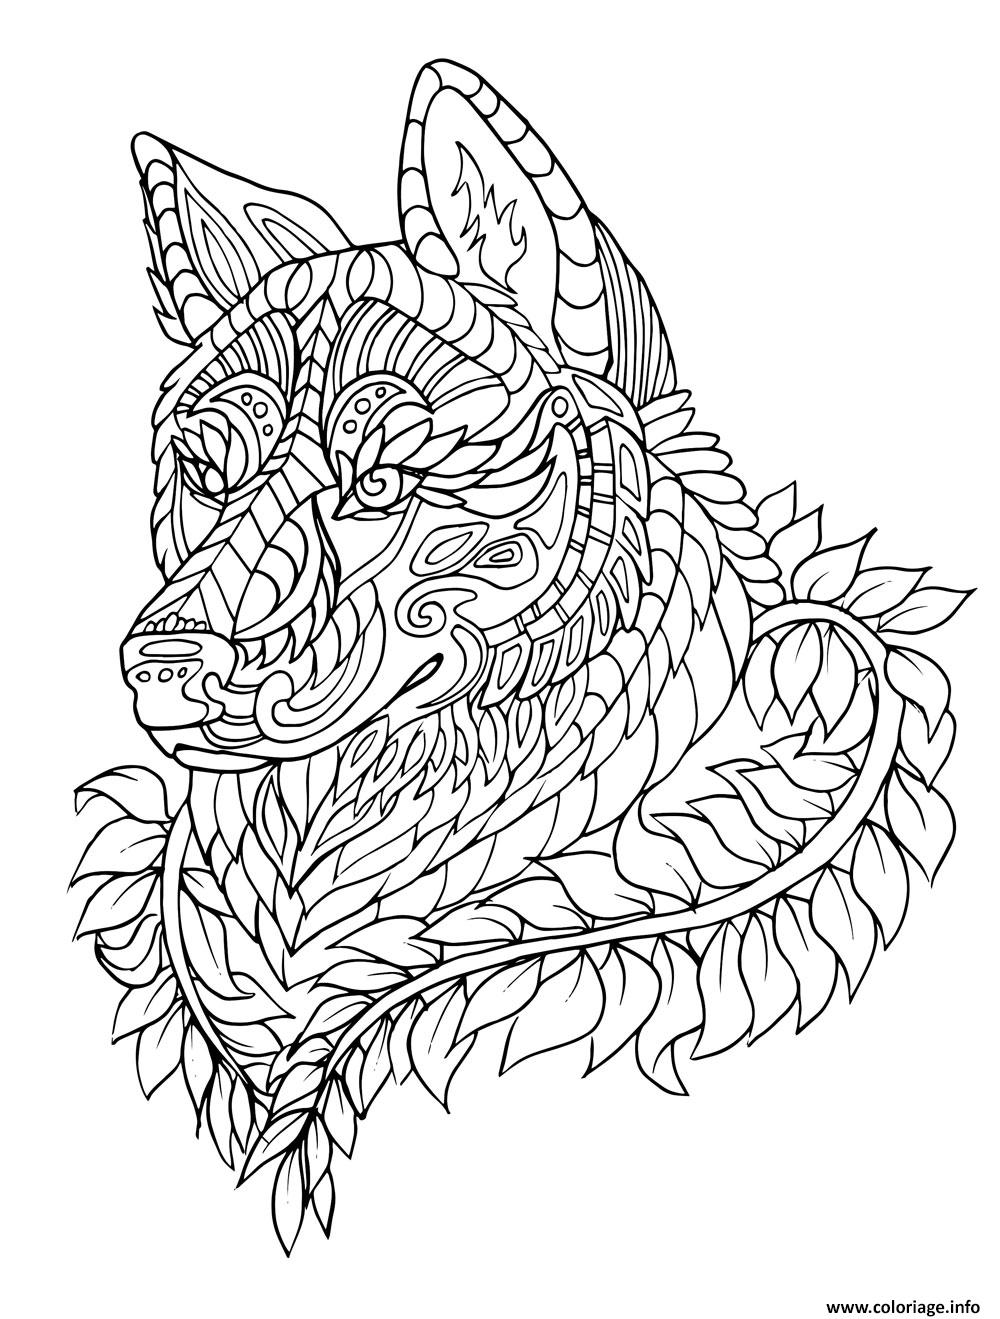 Coloriage Loup Wolf Adulte Zentangle Dessin